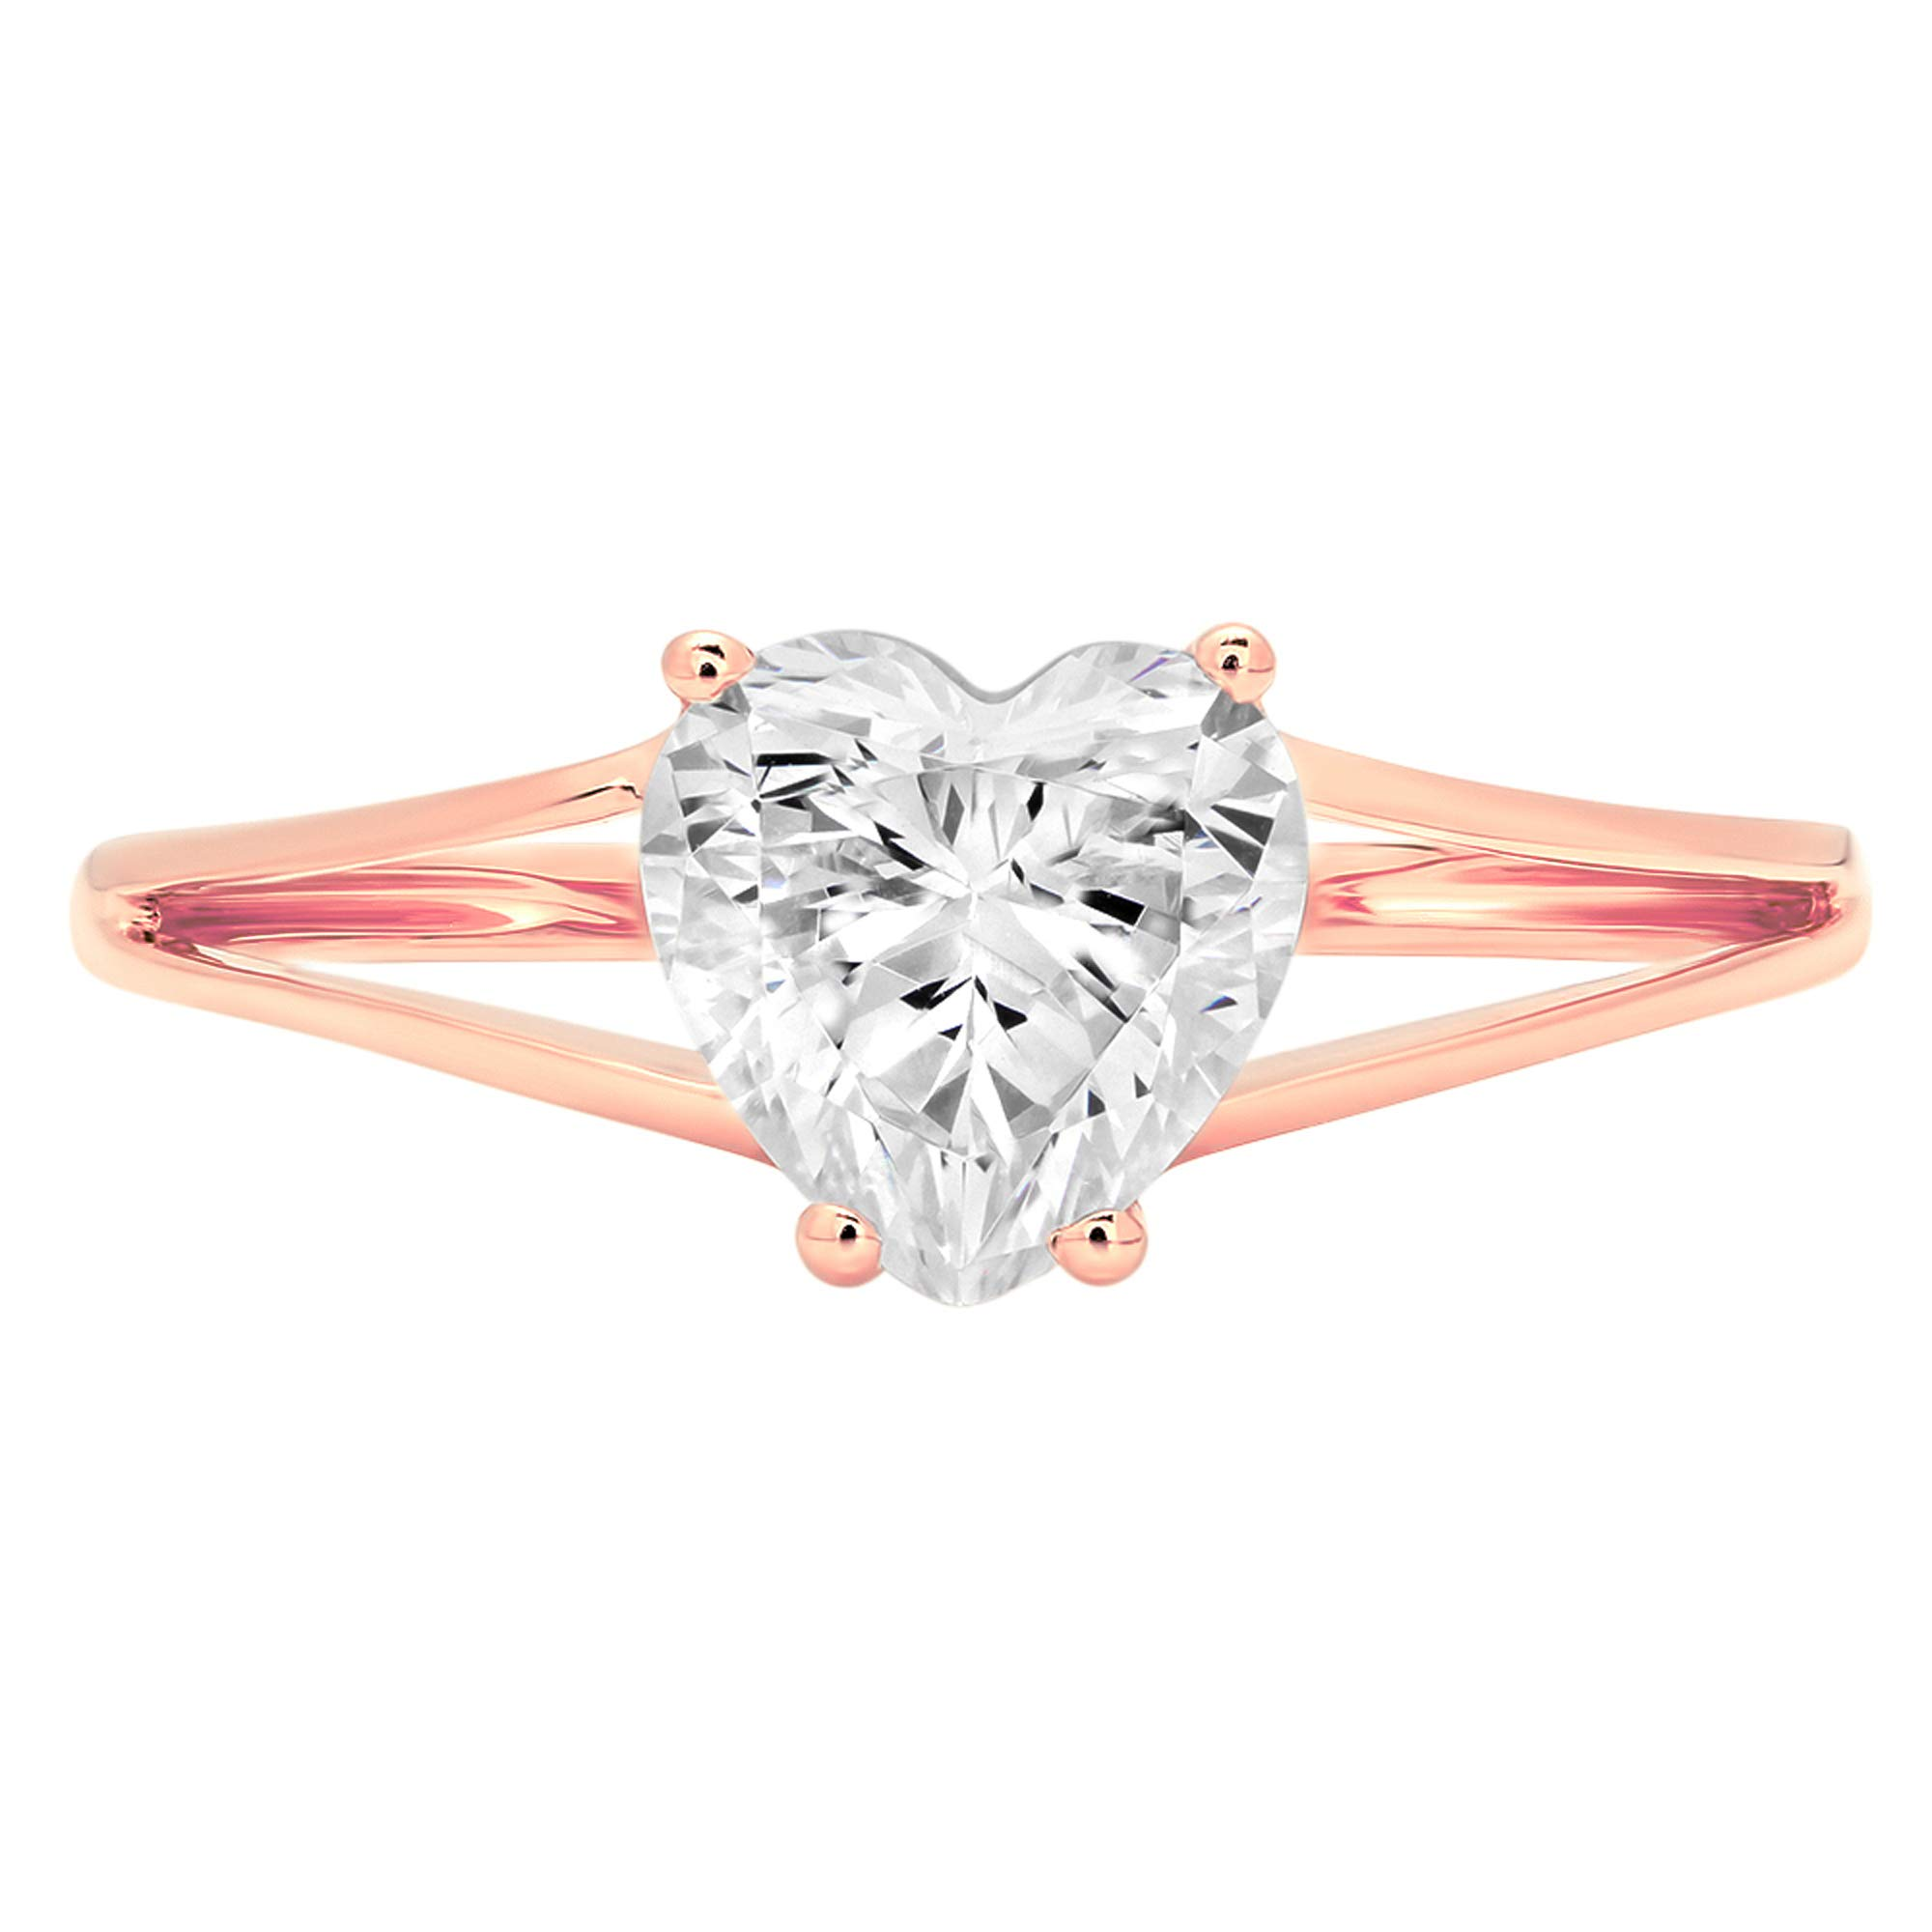 1.50 ct Brilliant Heart Cut Solitaire split shank Highest Quality Lab Created White Sapphire Ideal VVS1 D 4-Prong Engagement Wedding Bridal Promise Anniversary Ring Solid Real 14k Rose Gold for Women